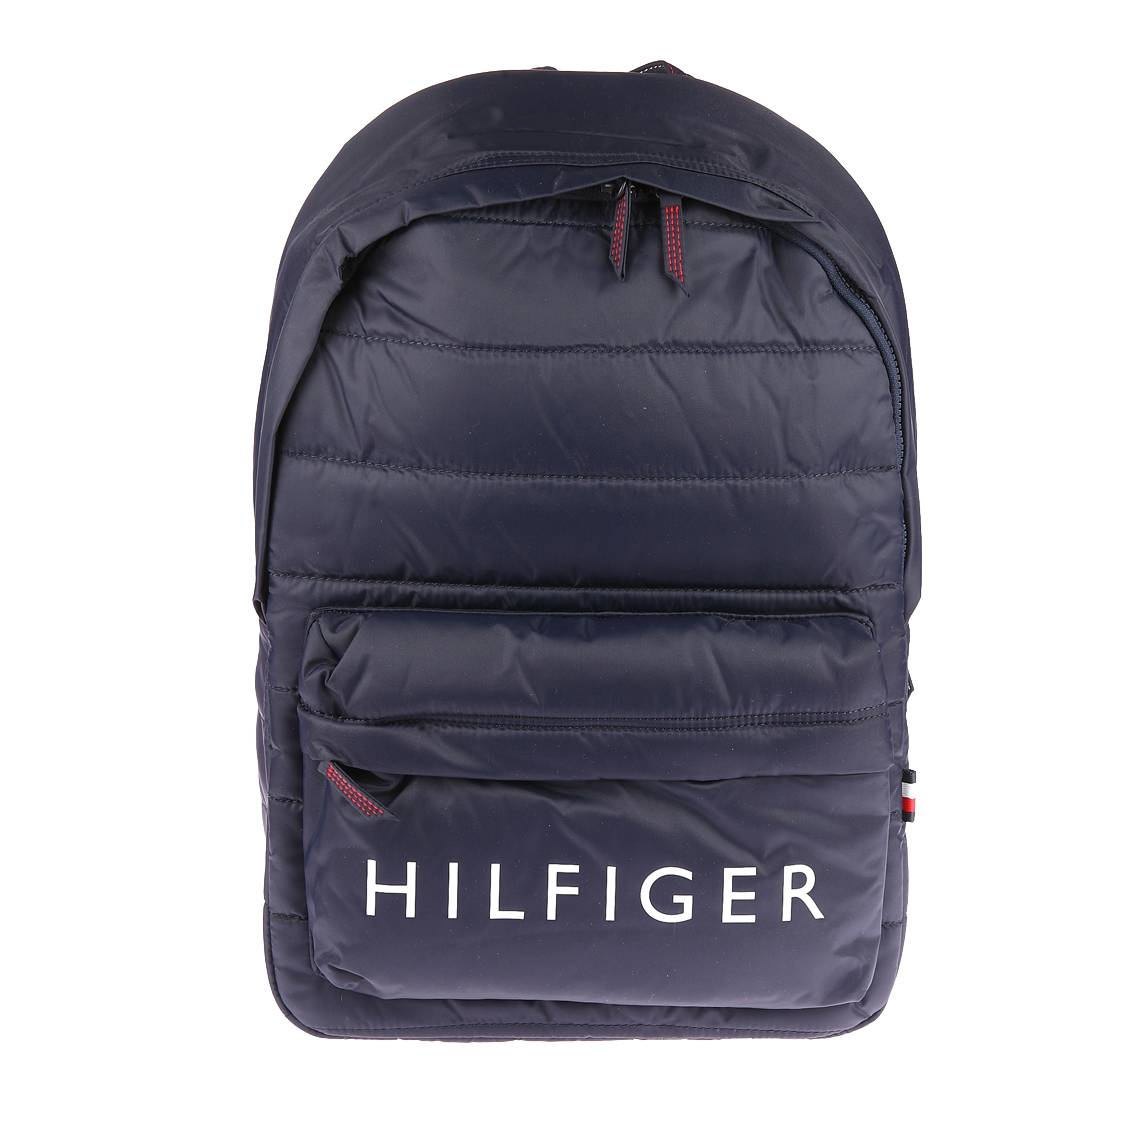 Sac à dos Tommy Hilfiger Go Corporate bleu